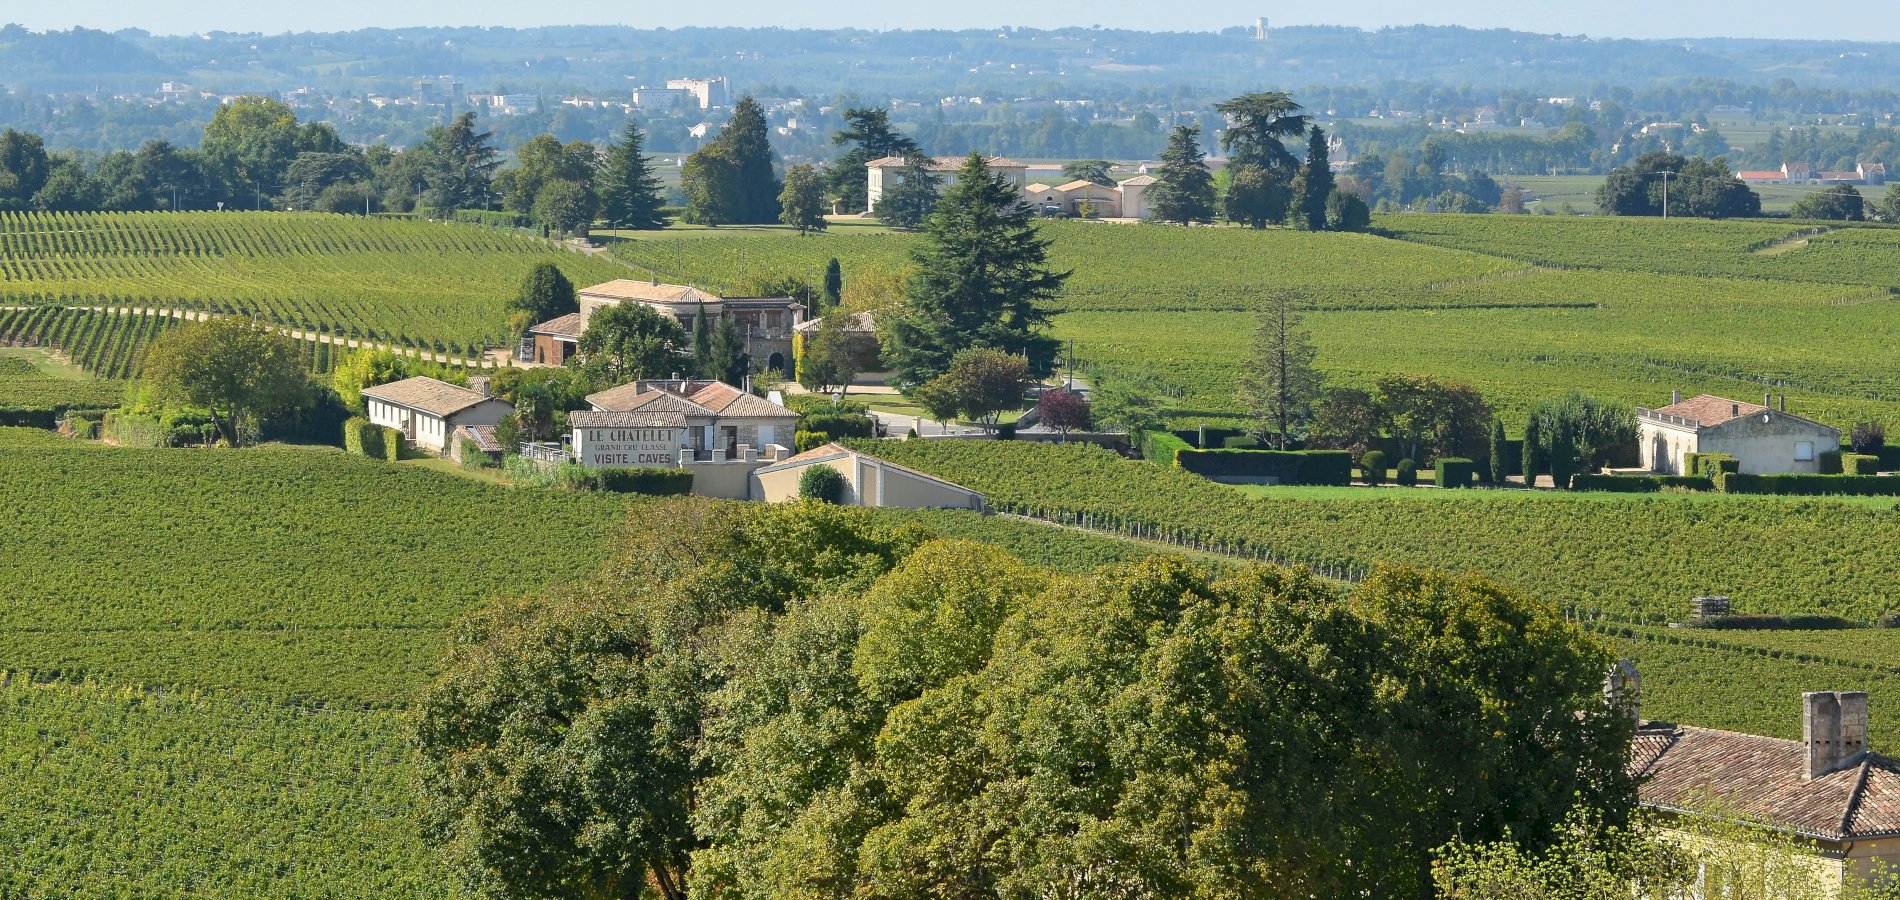 Ophorus Tours - Saint Emilion Wine Tour Small Group Private Full Day Trip from Saint Emilion